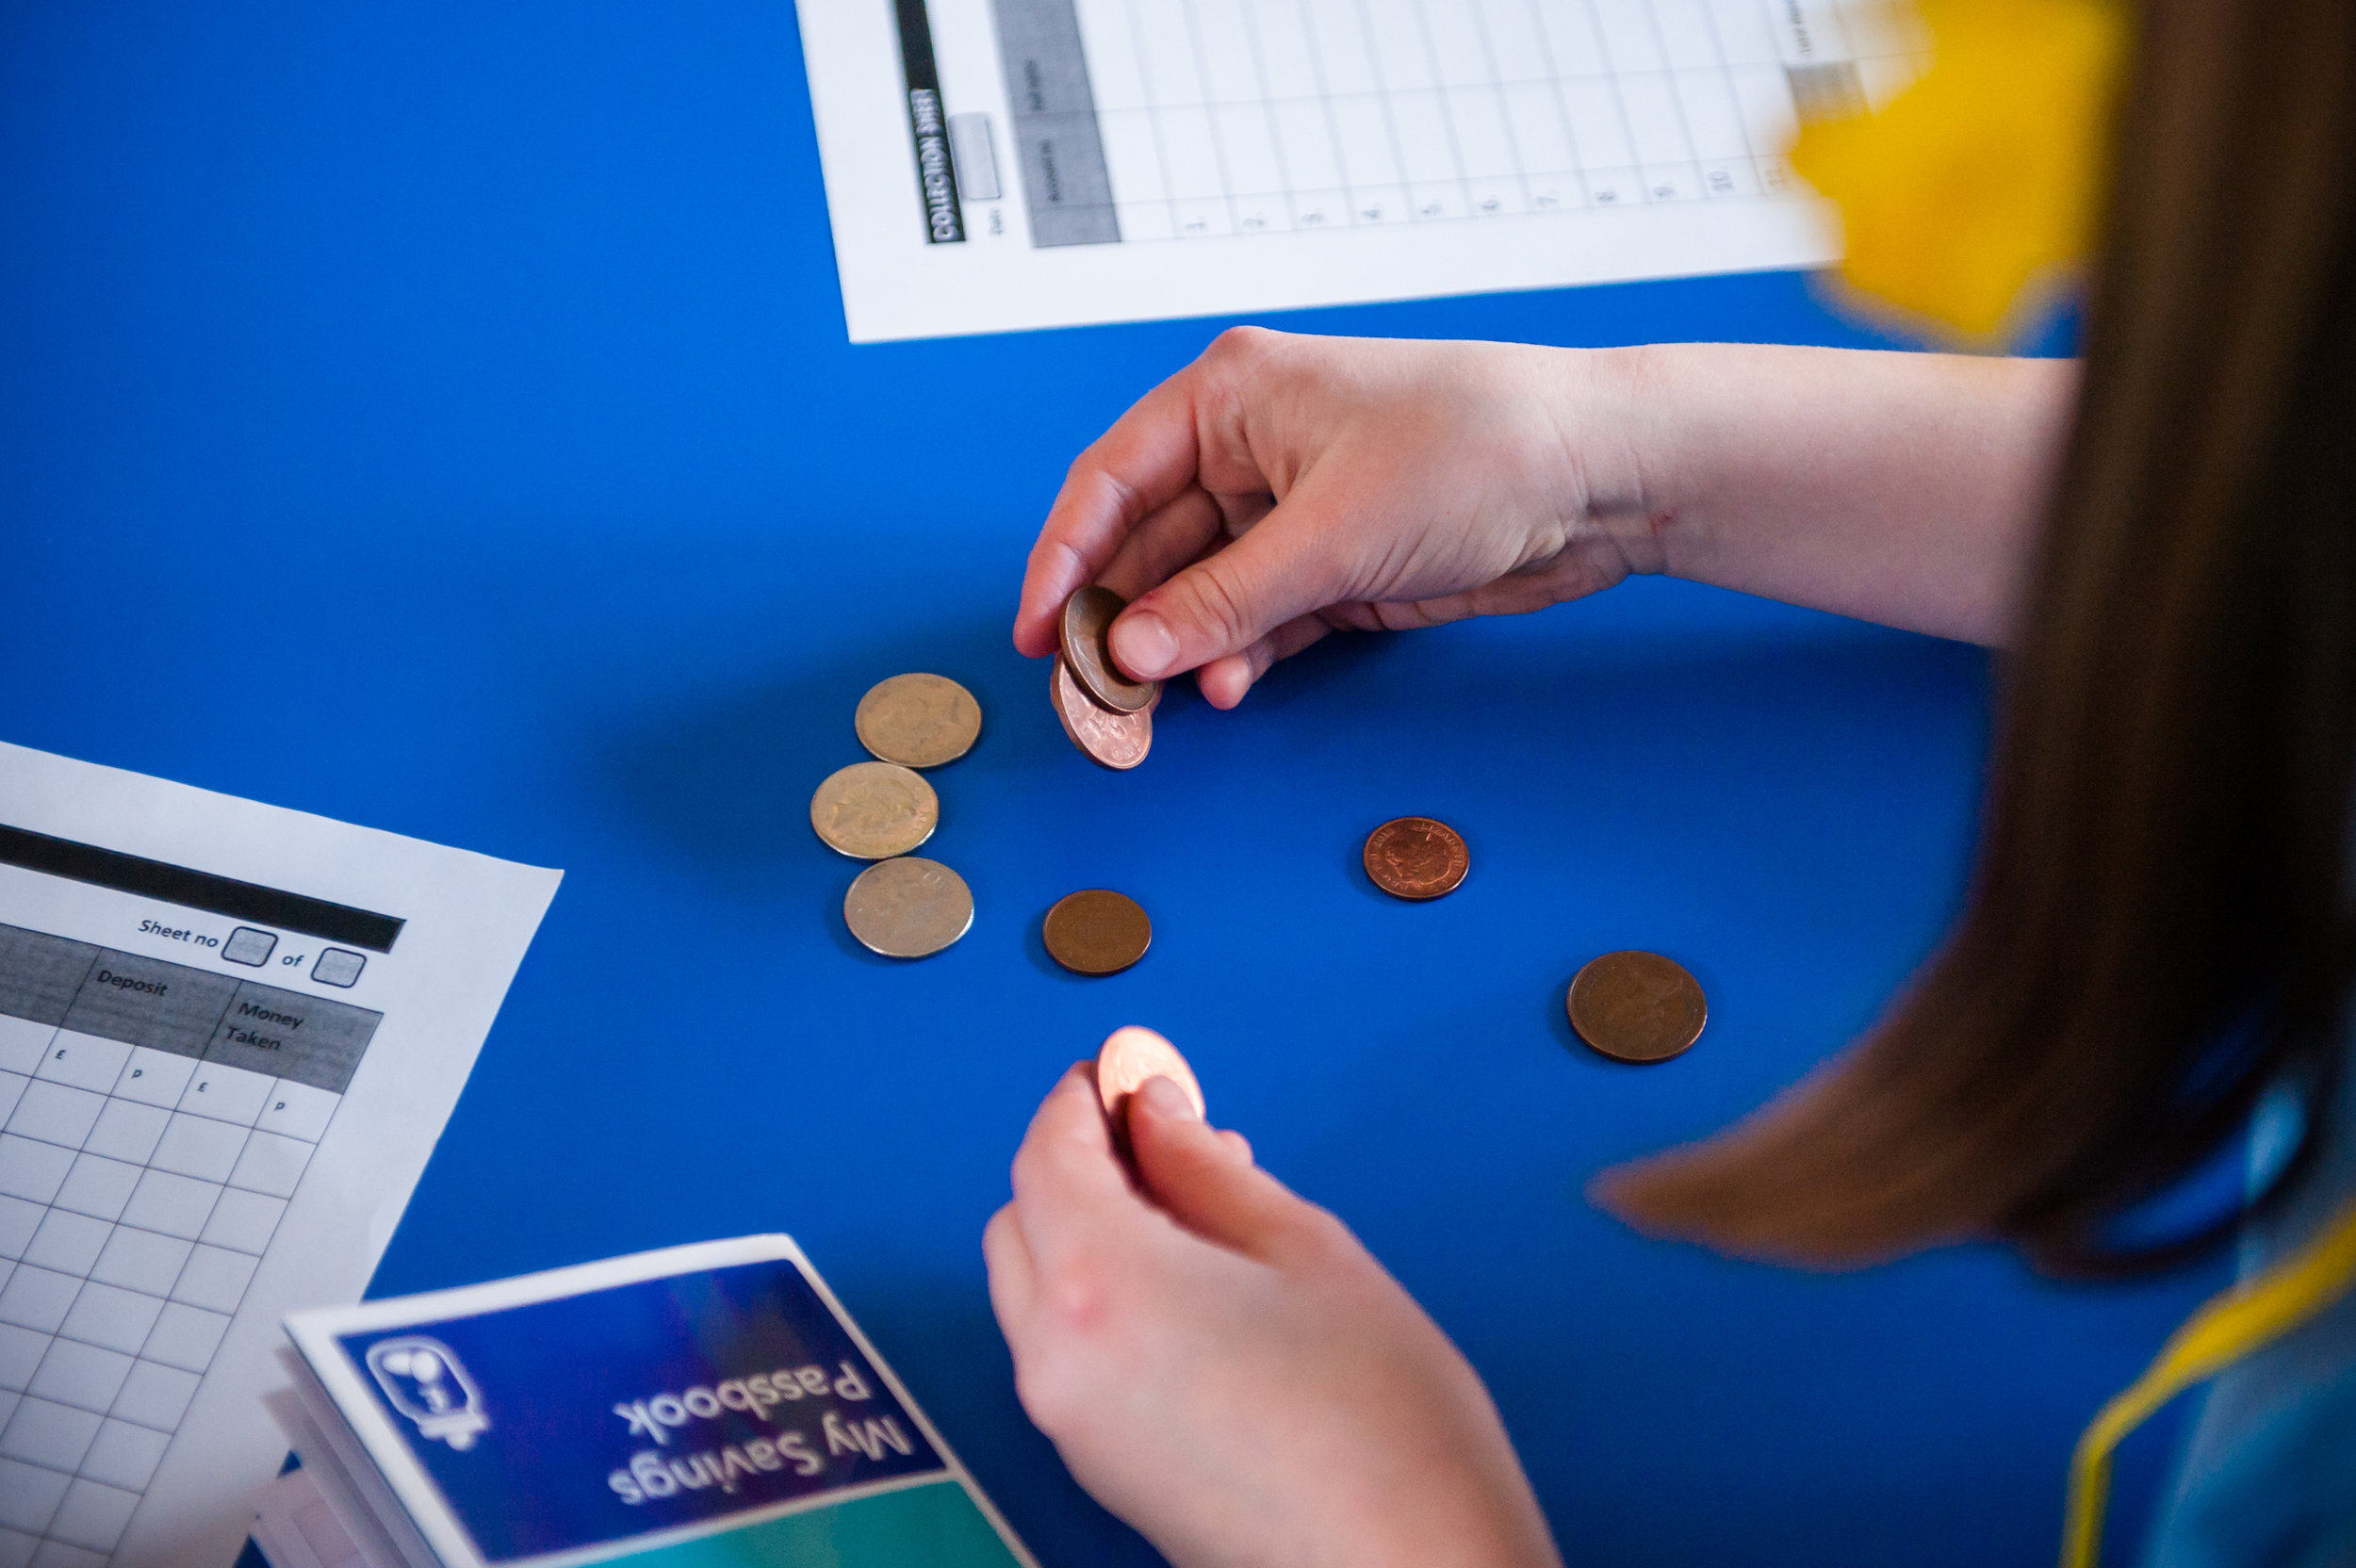 Full Support Programme - We are also able to offer in-school support to help primary schools embed financial education into the curriculum and set up savings clubs.